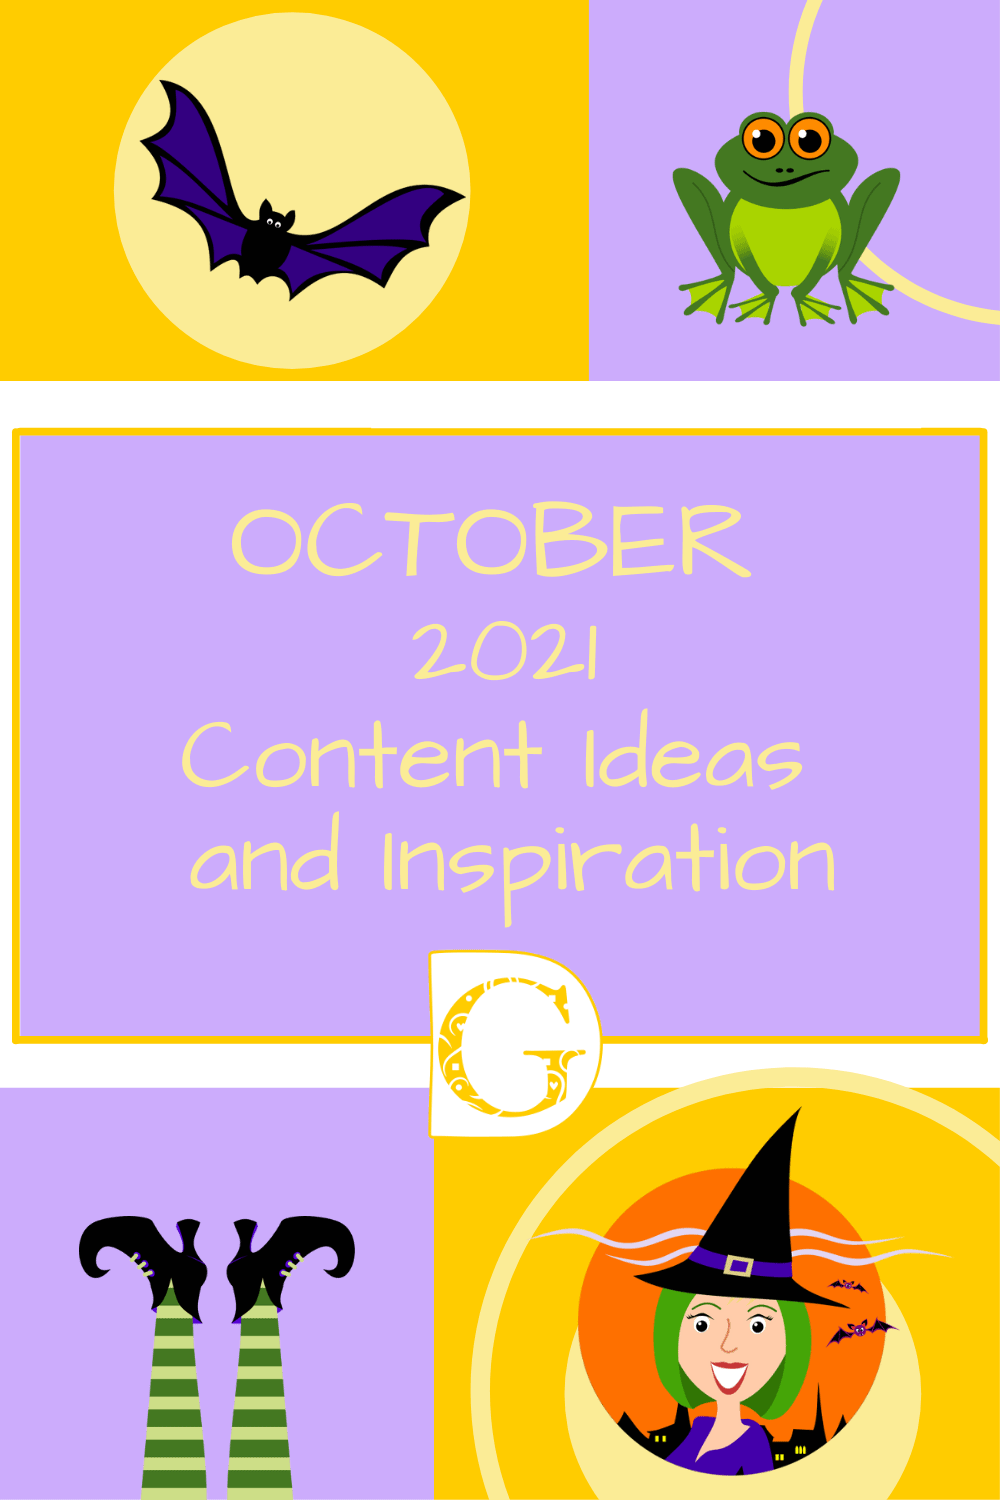 October 2021 Content Ideas and Inspiration